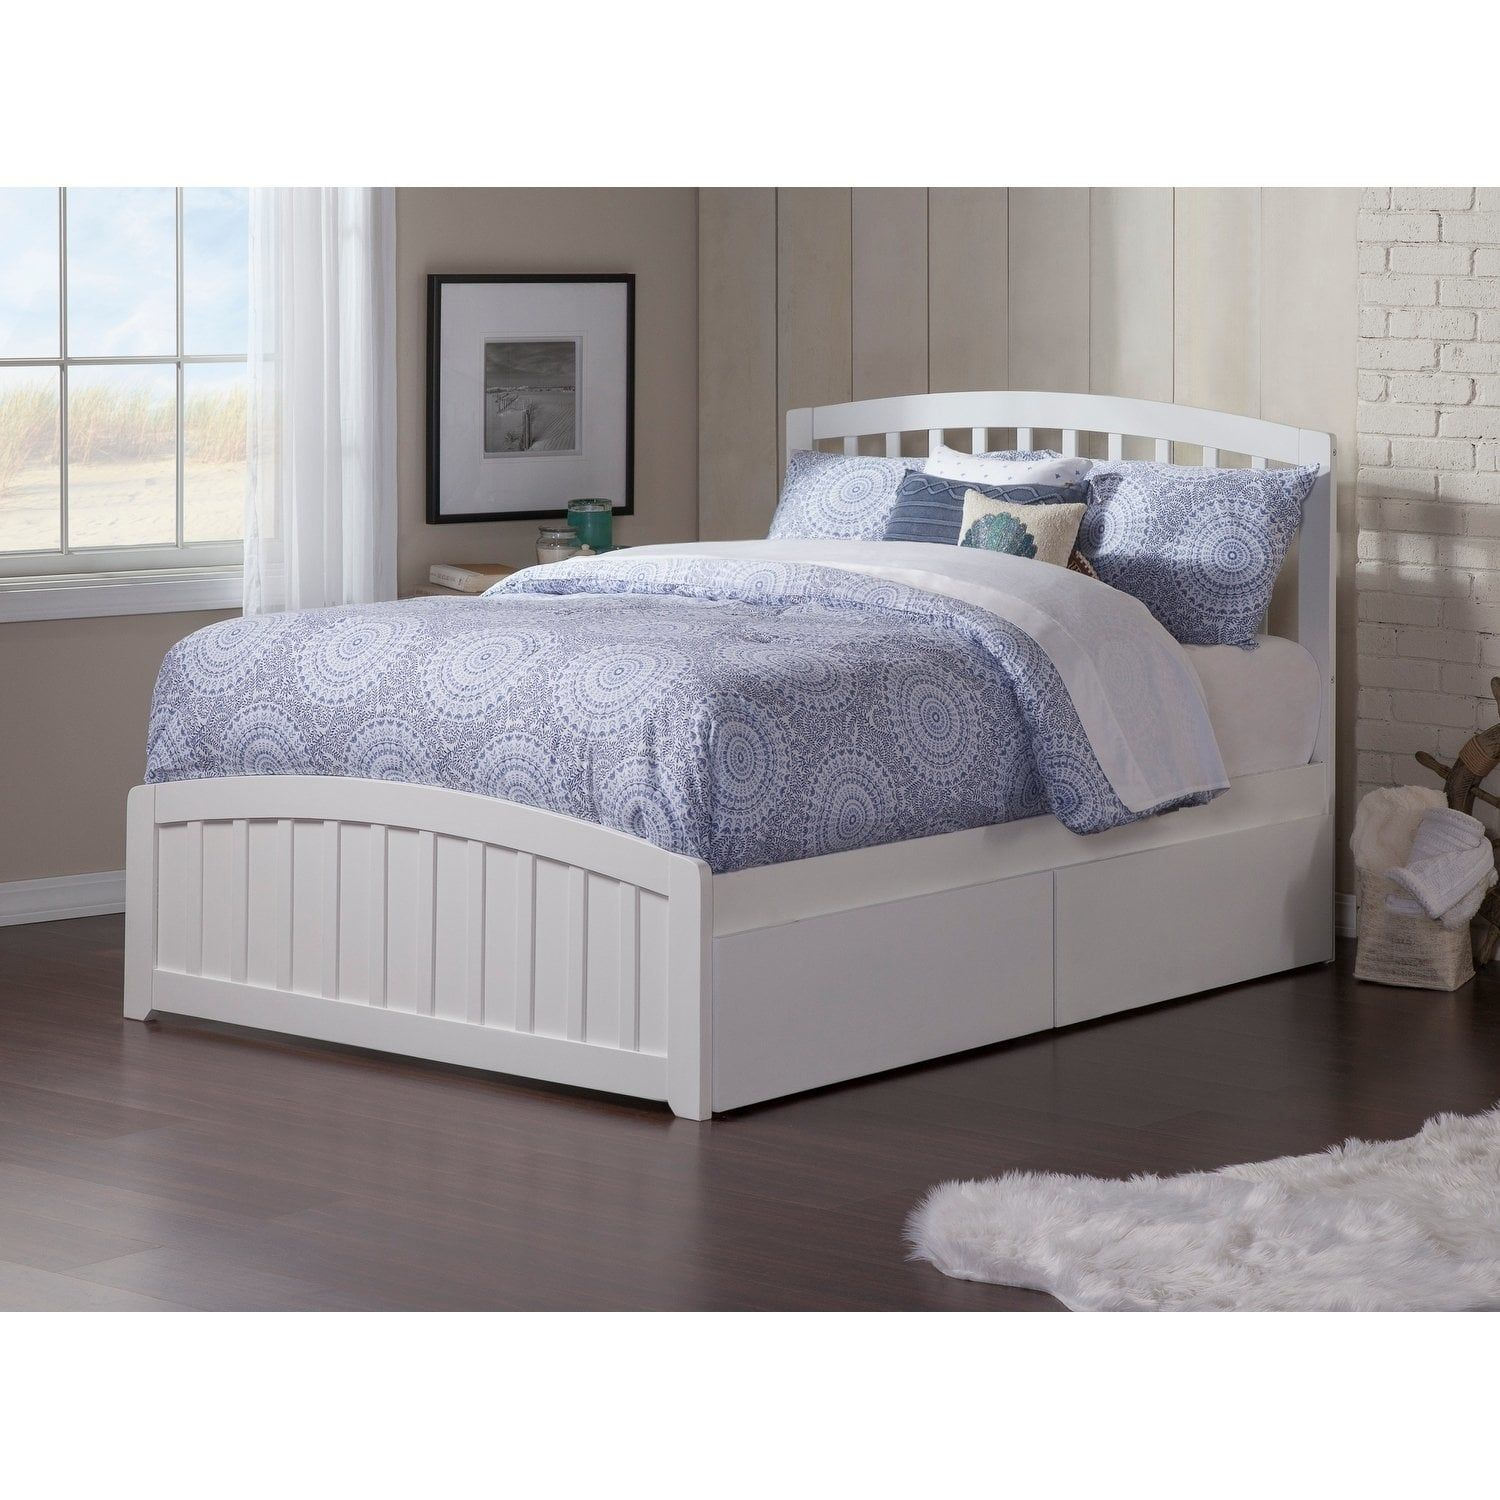 Richmond Full Platform Bed with Matching Foot Board with 2